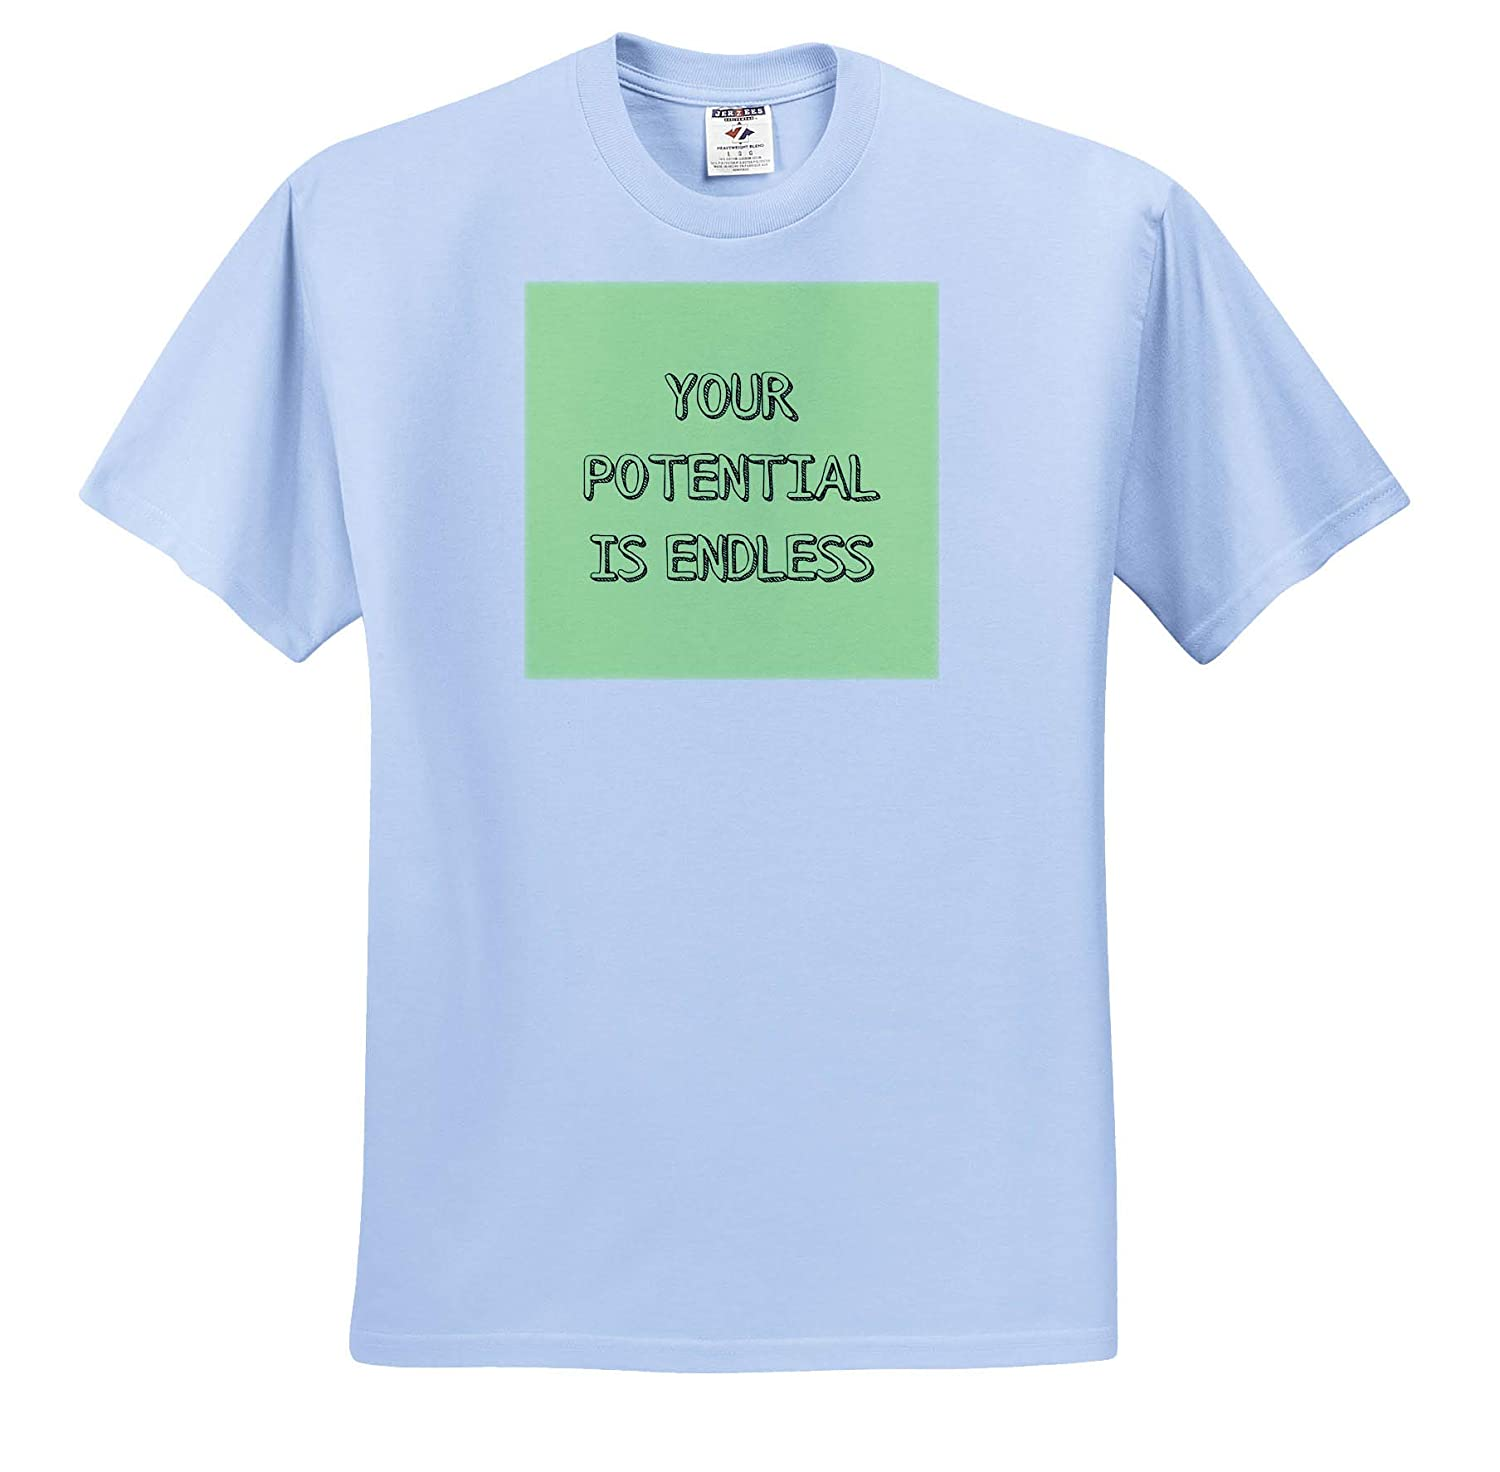 ts/_316971 Image of Your Potential is Endless Quote Adult T-Shirt XL 3dRose Gabriella-Quote